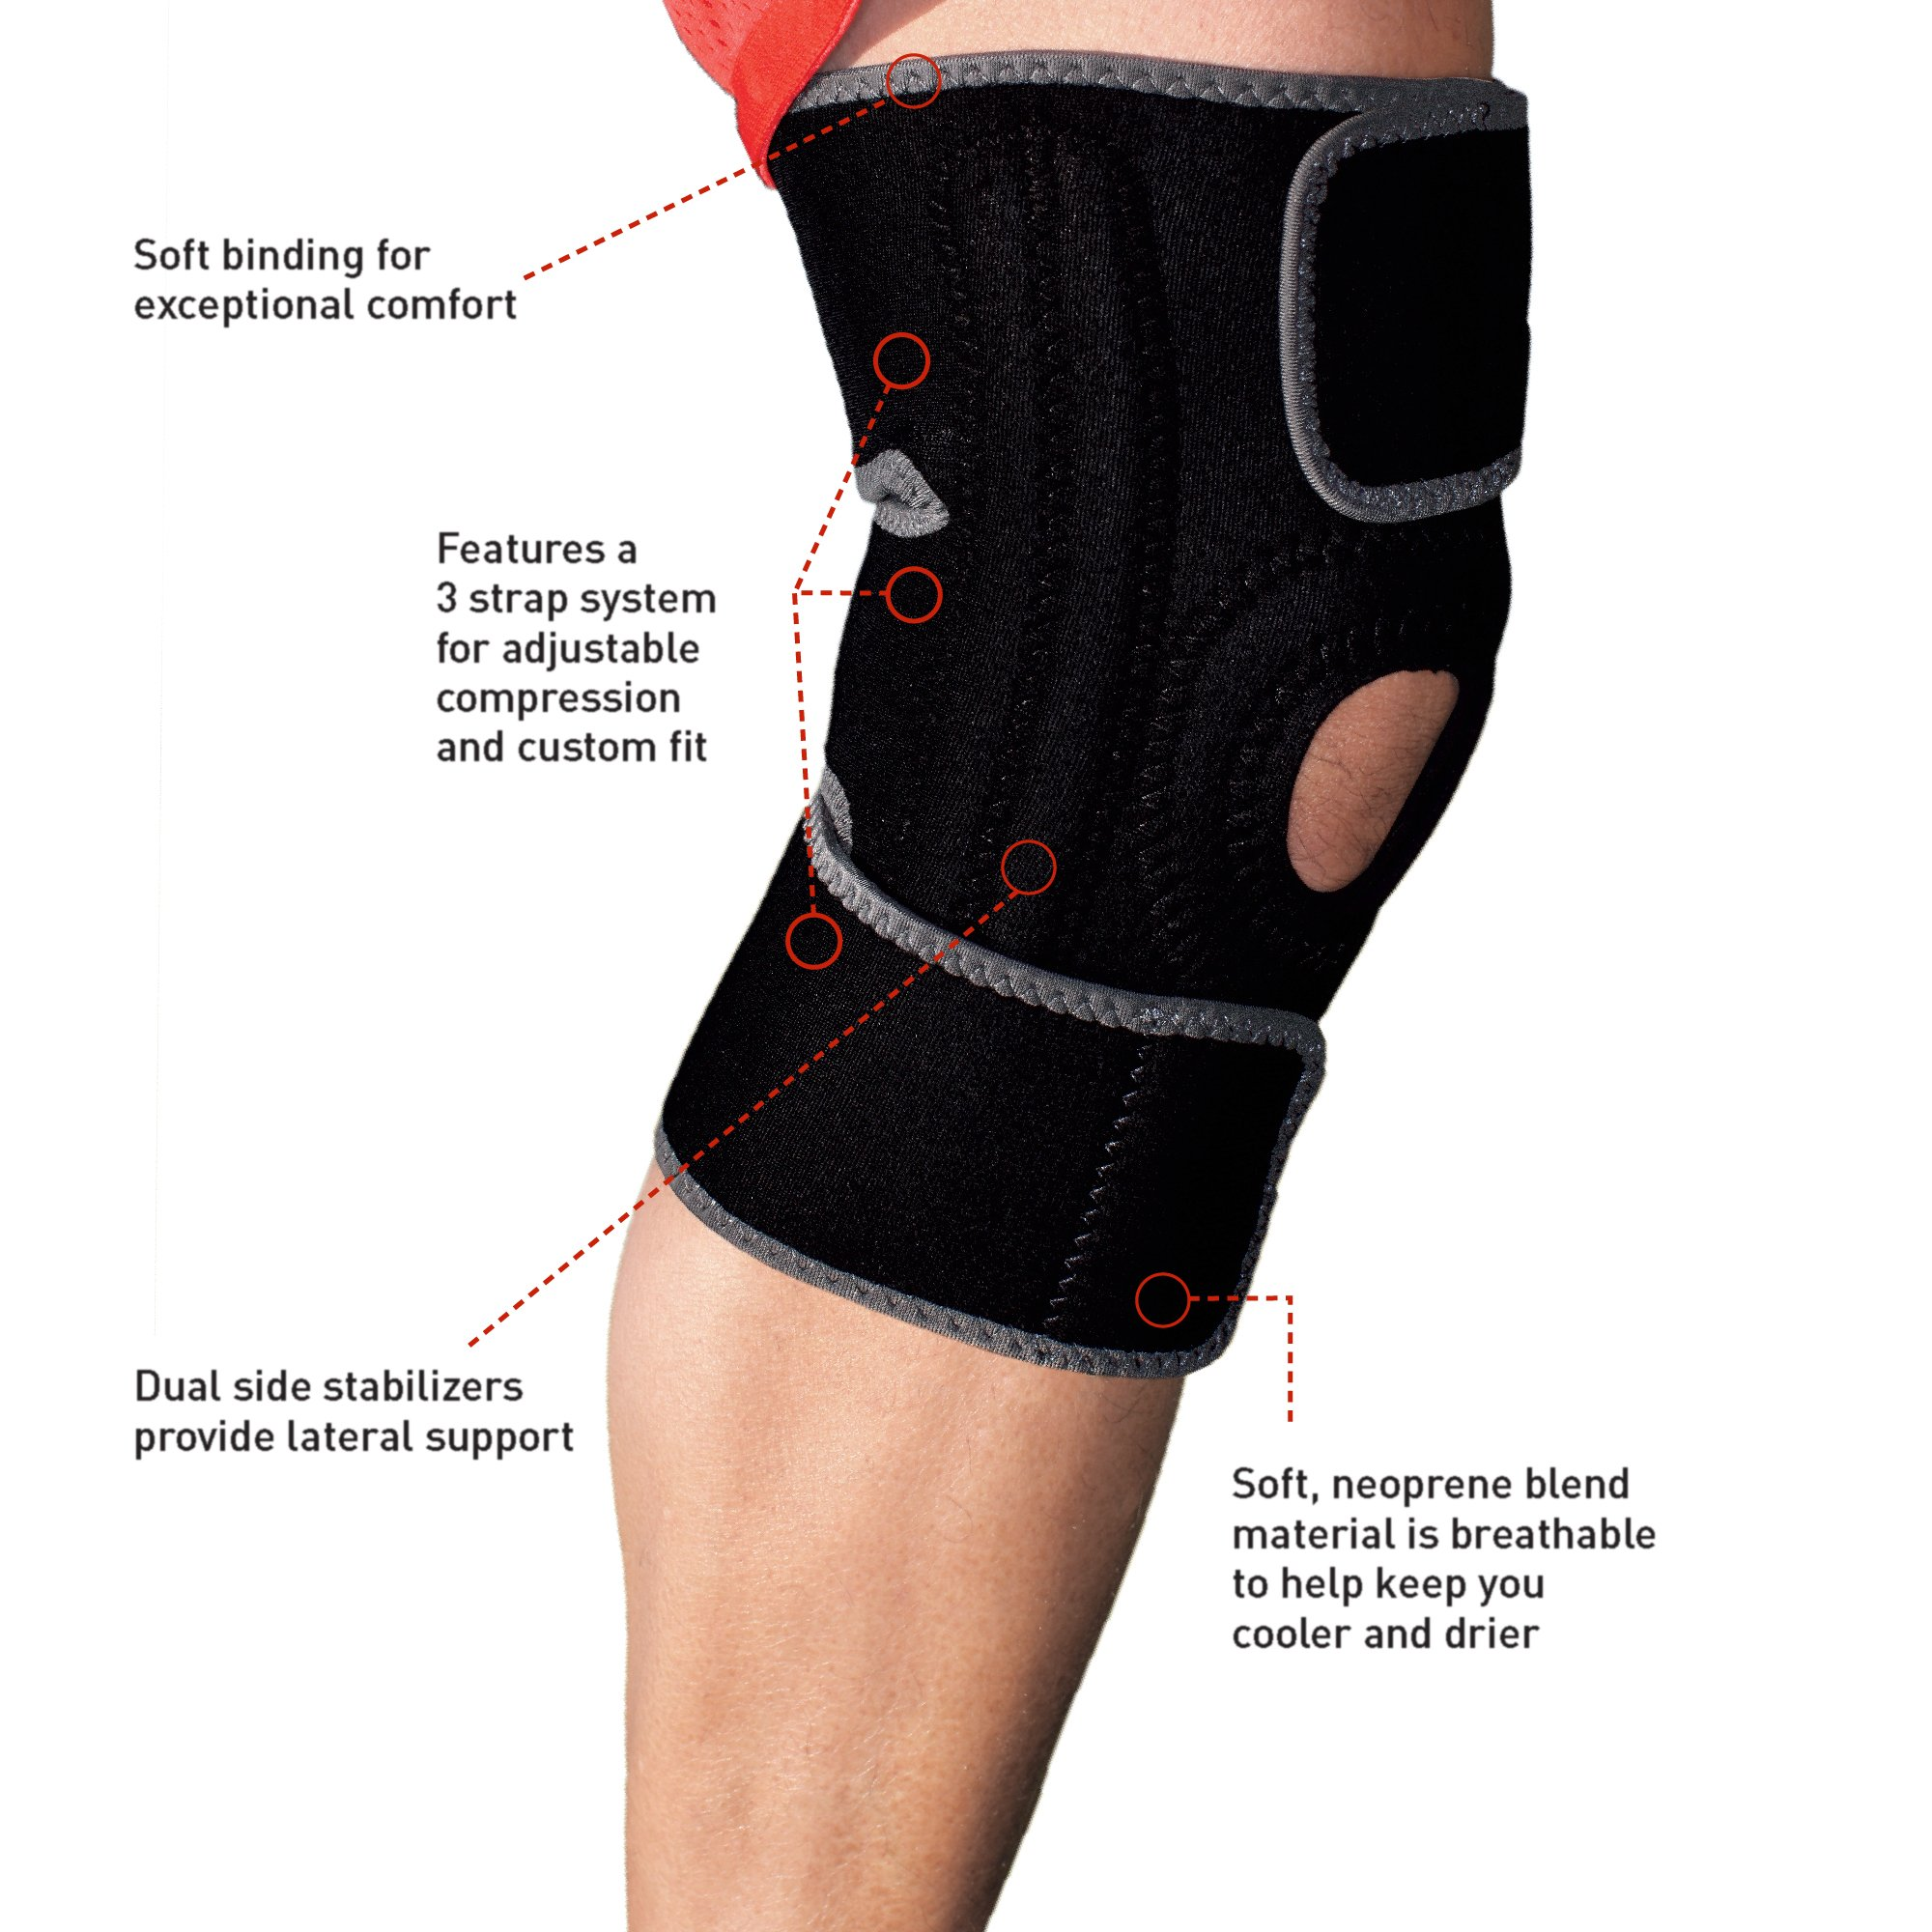 Ace Brand Knee Brace America S Most Trusted Brand Of